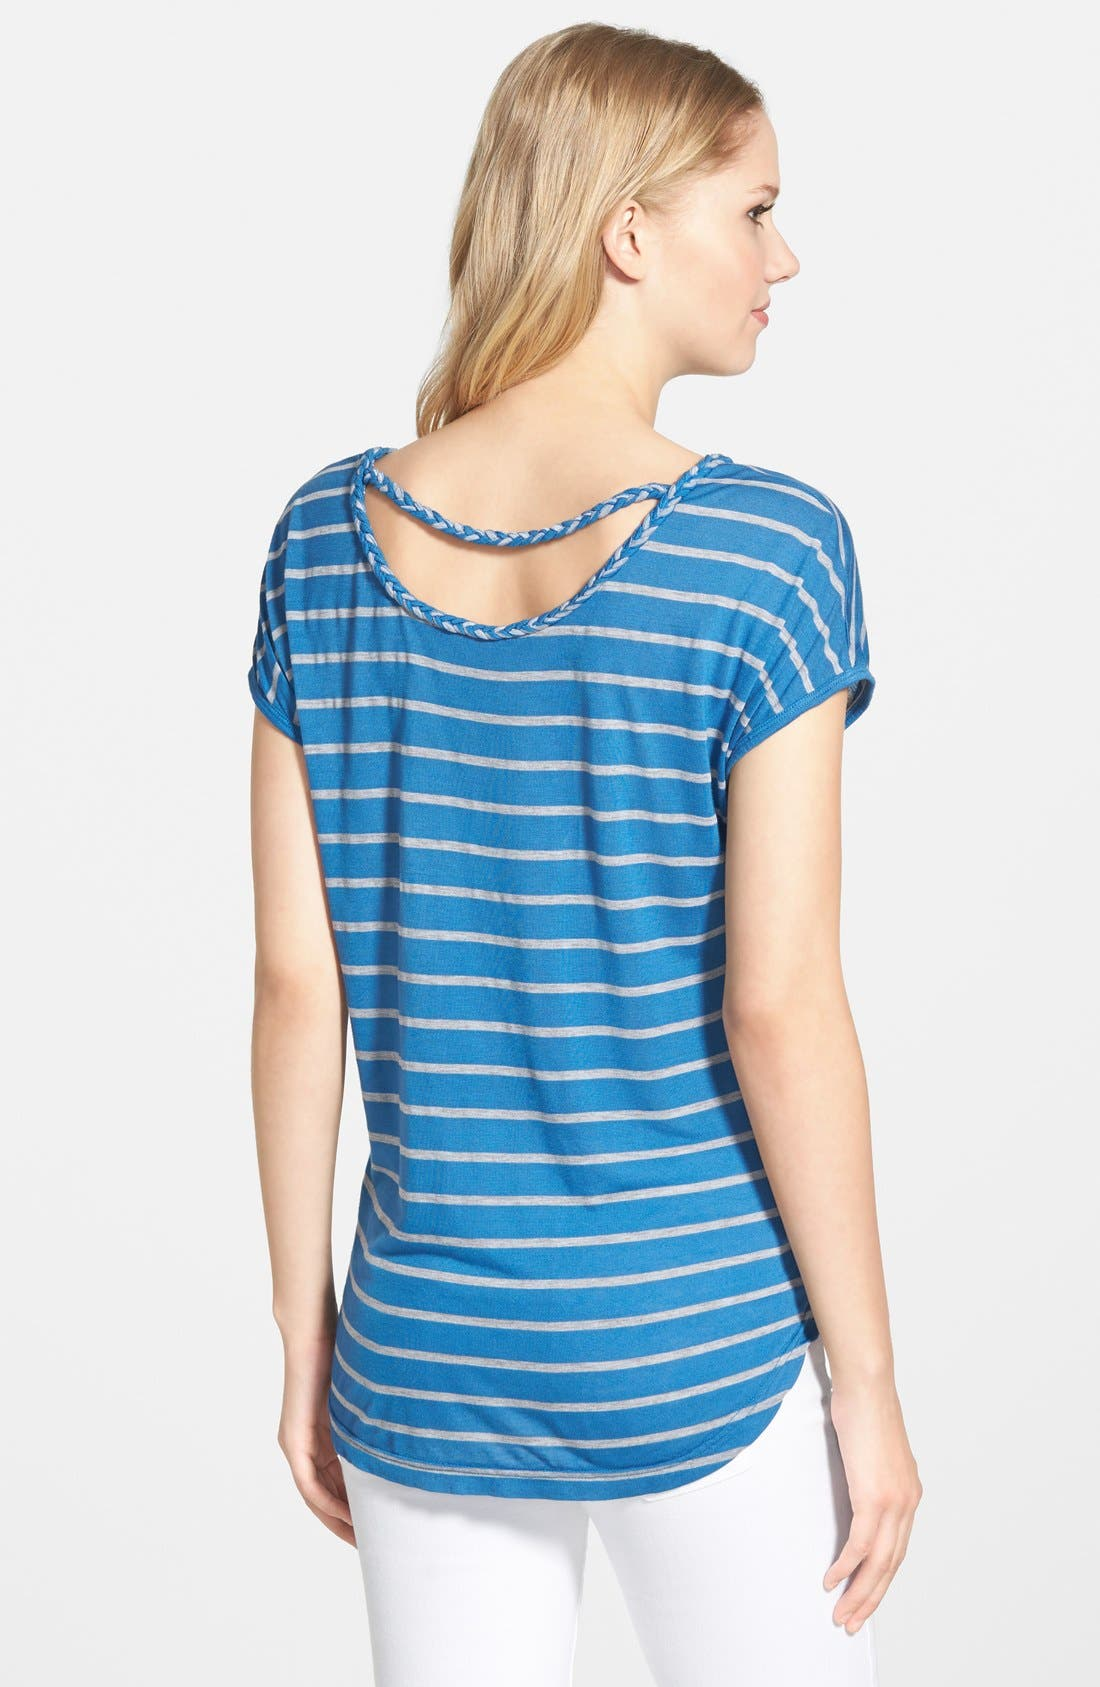 Main Image - Two by Vince Camuto Braid Trim Stripe Tee